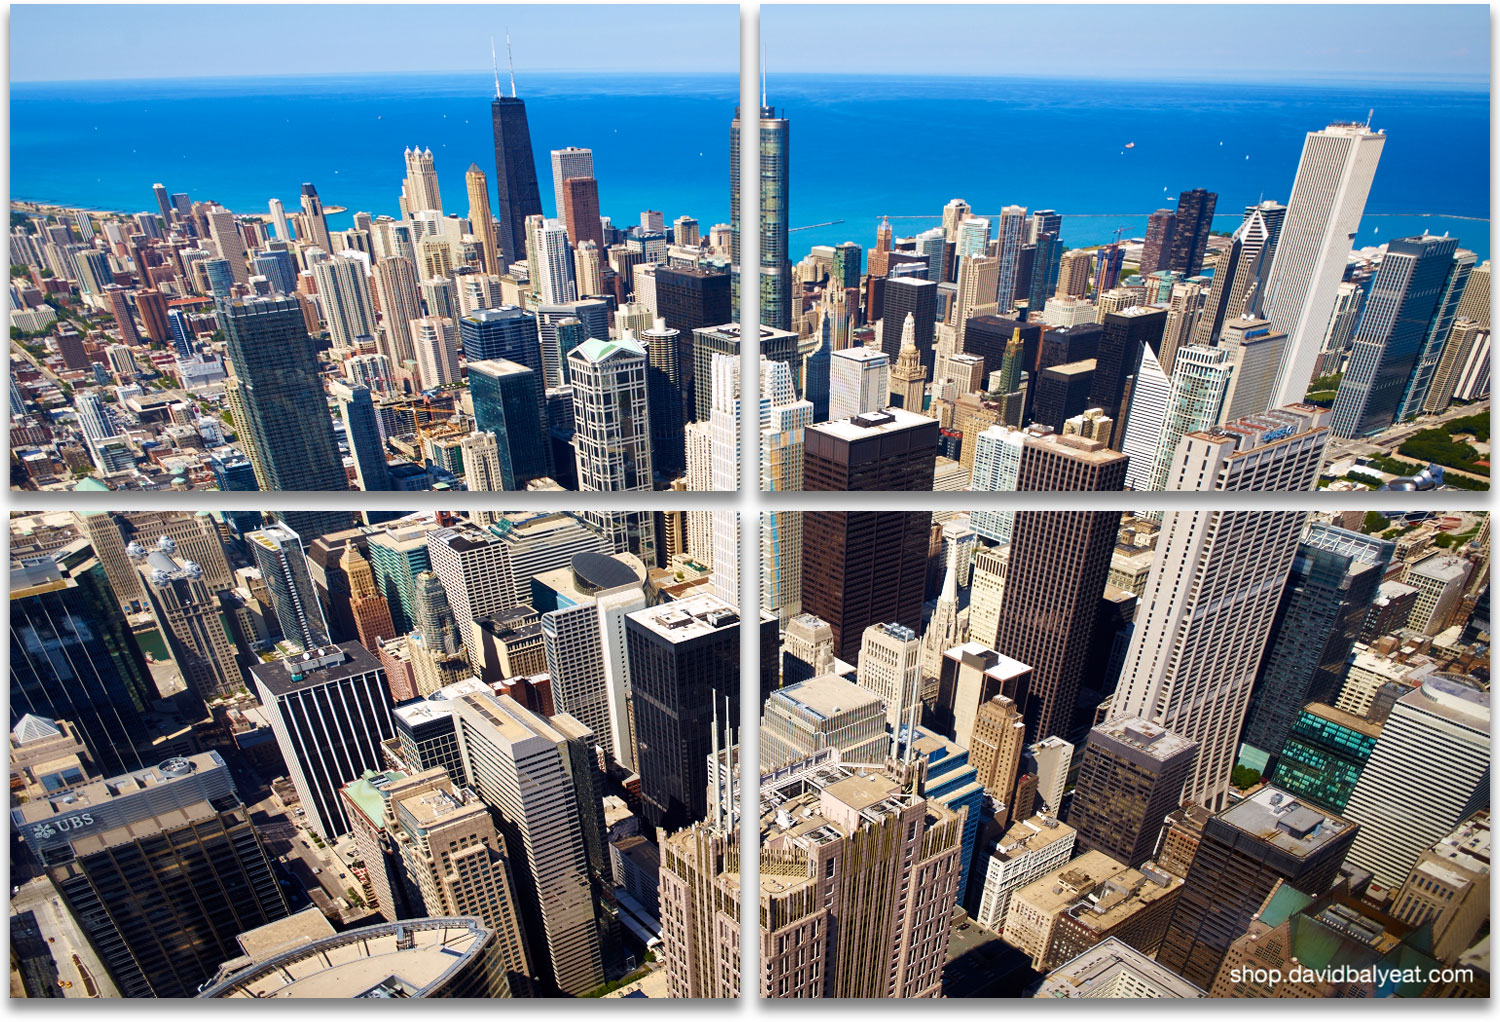 Windy City Chicago Aerial Skyline High Definition HD Cityscape Photography